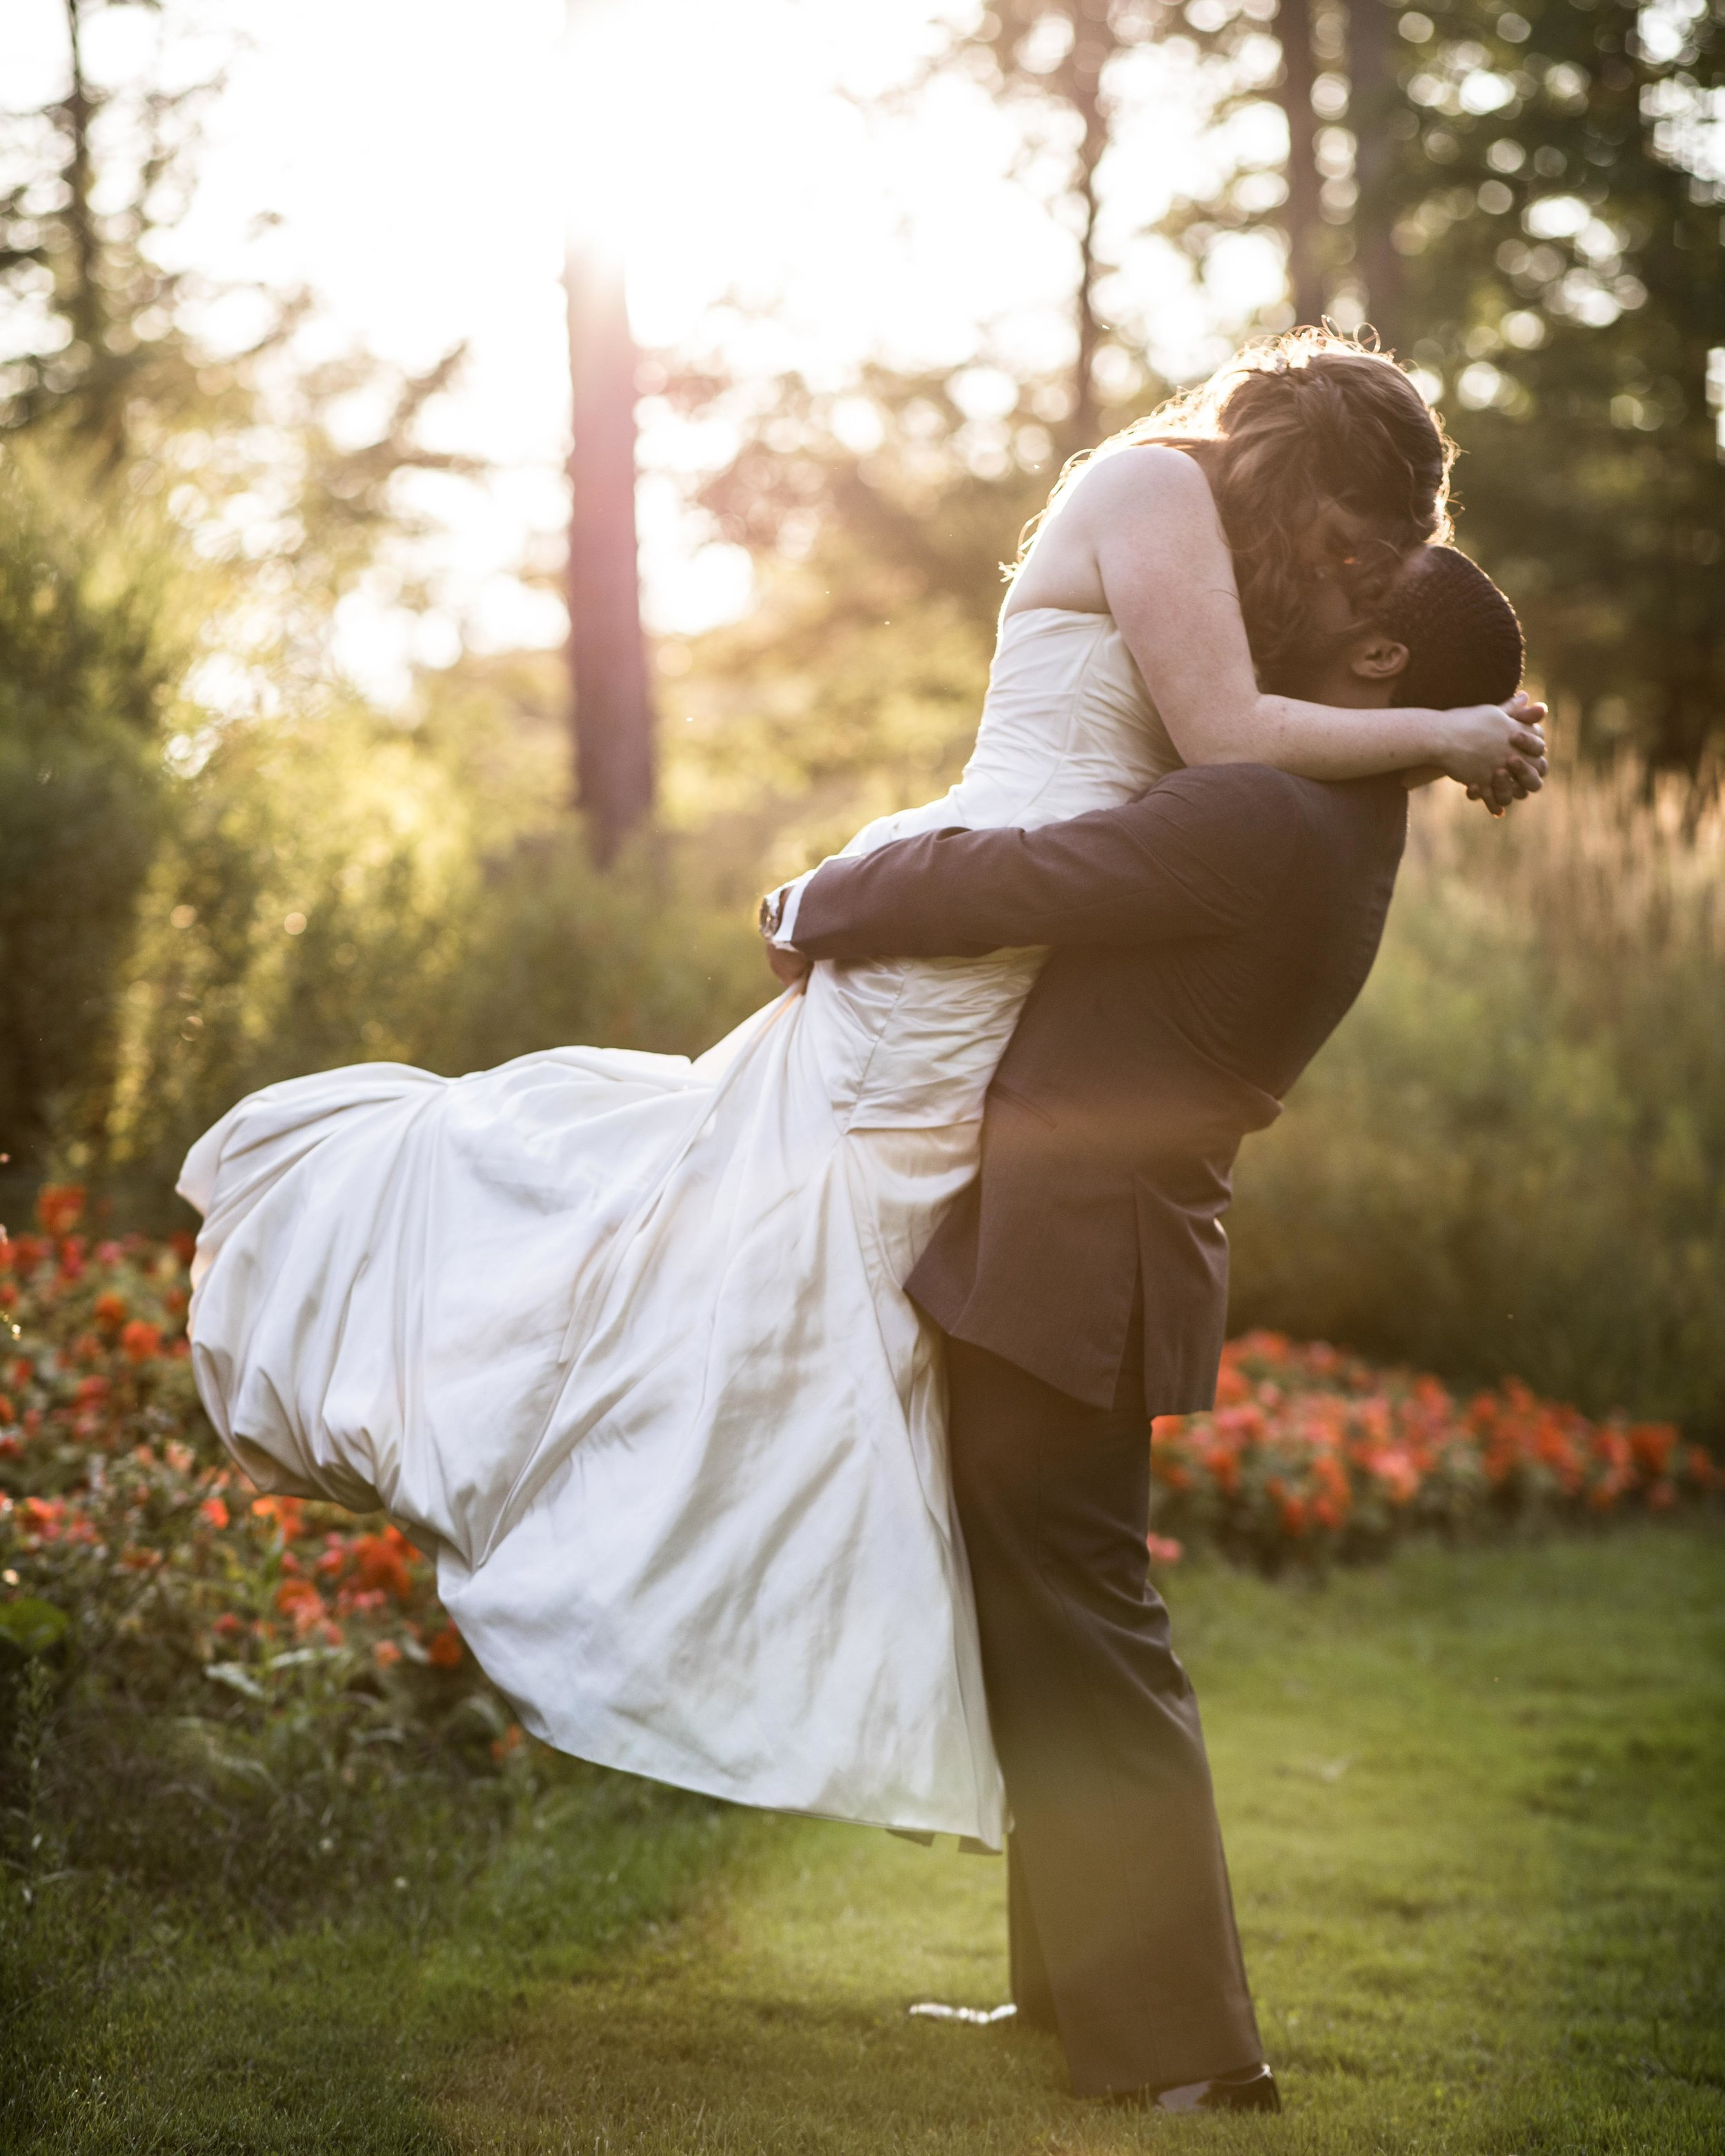 The groom lifts the bride up in the air as she kisses him with sunset and flower landscape behind them